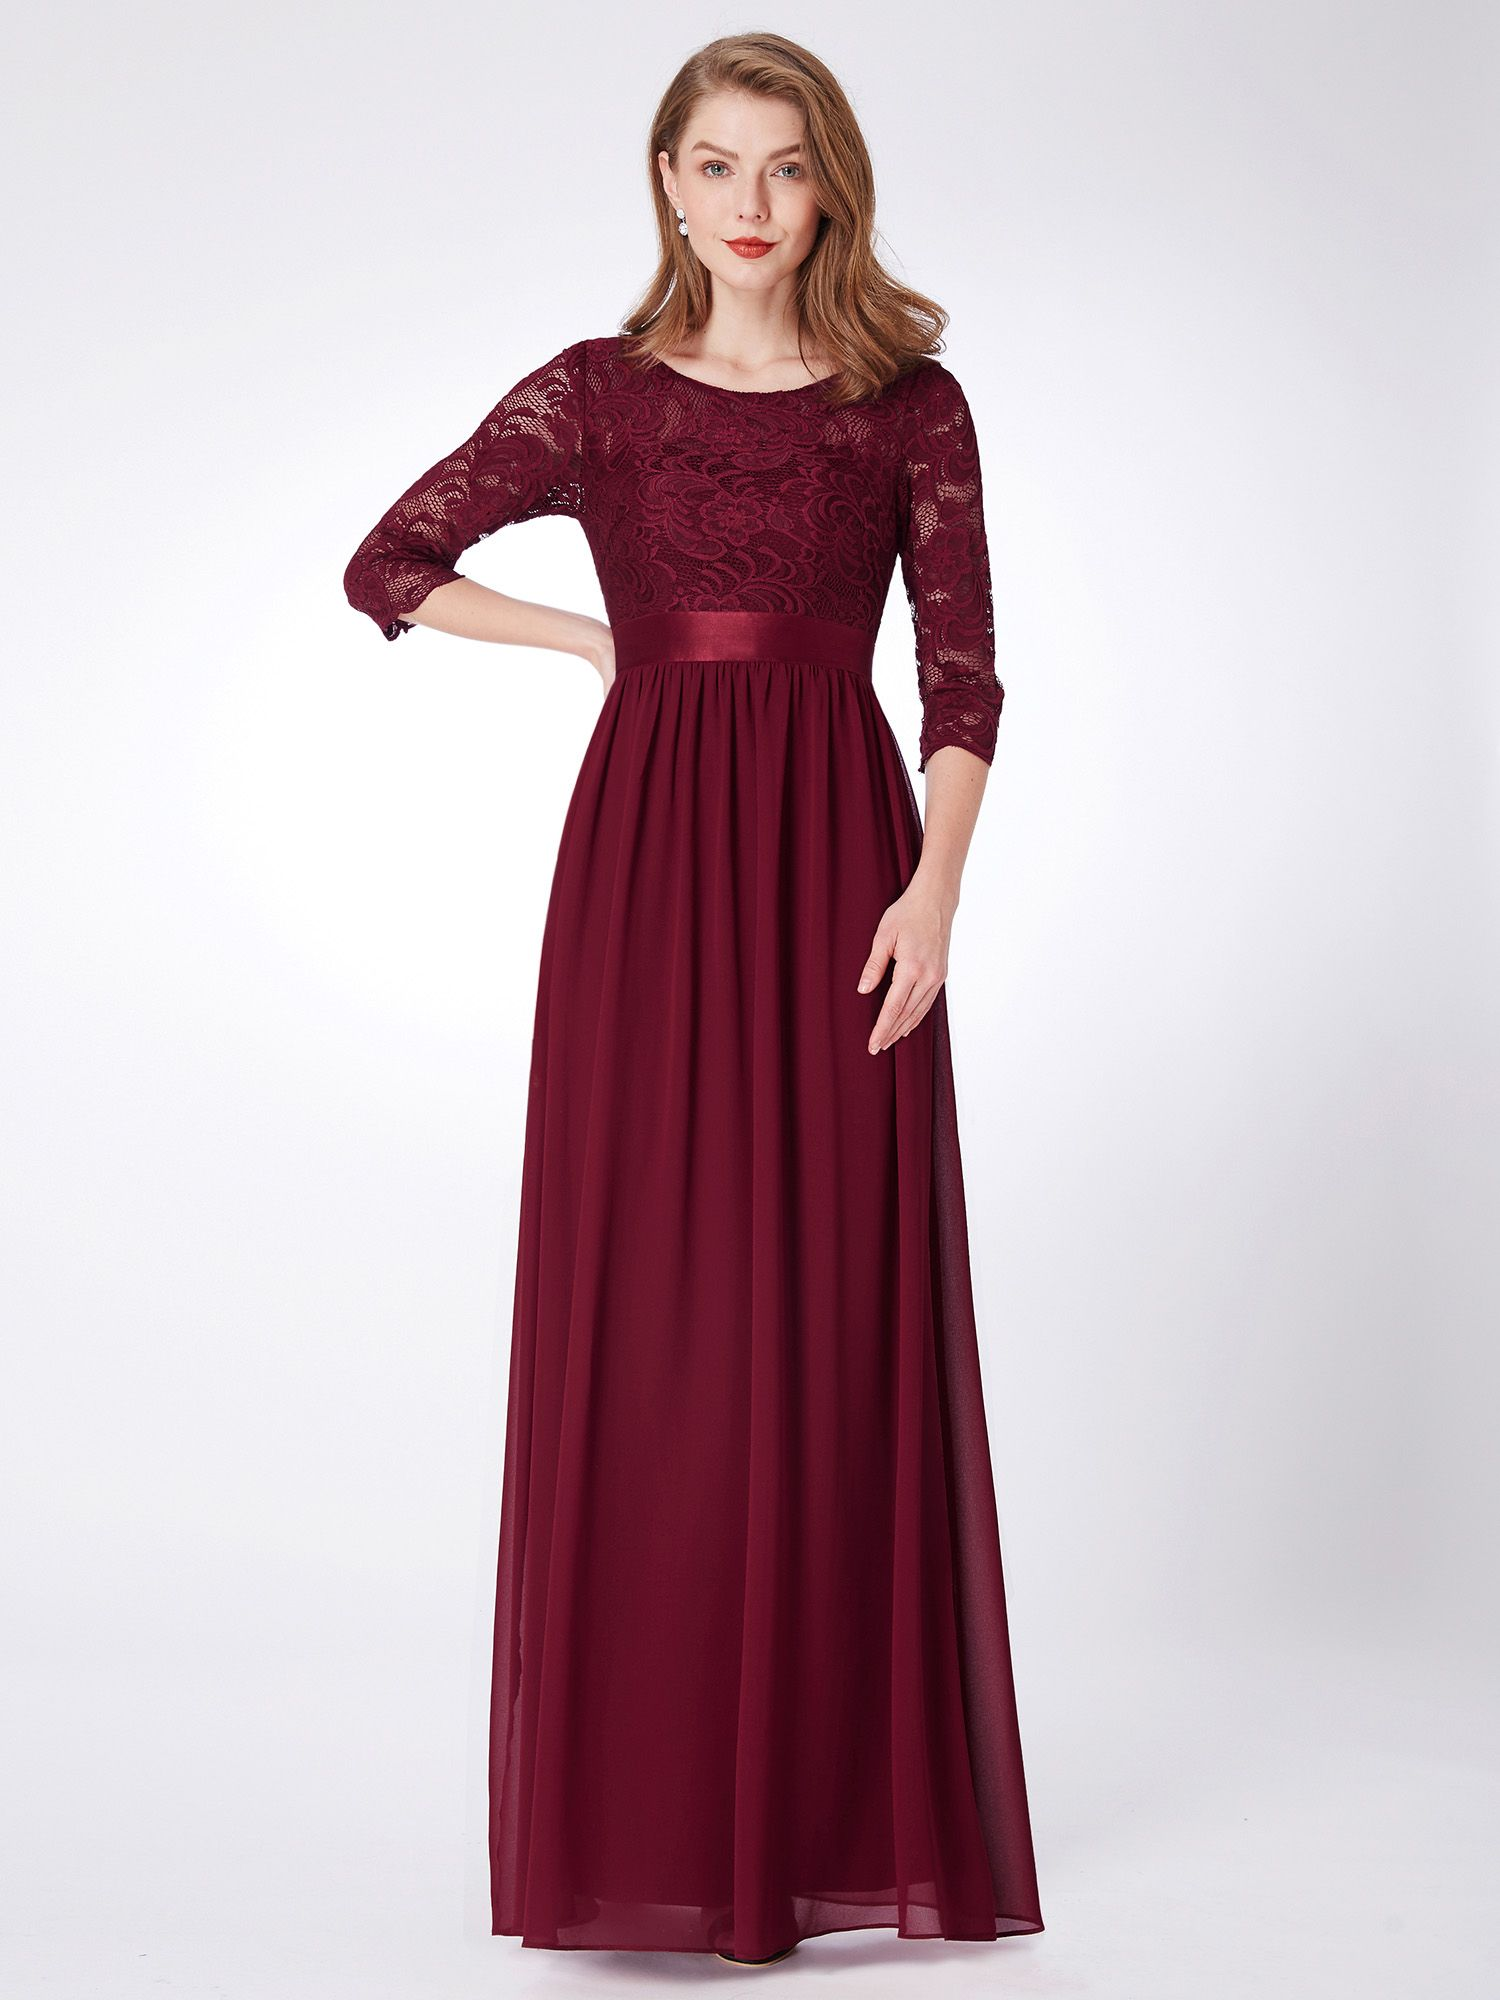 Clothing in 2020 burgundy bridesmaid dresses lace party